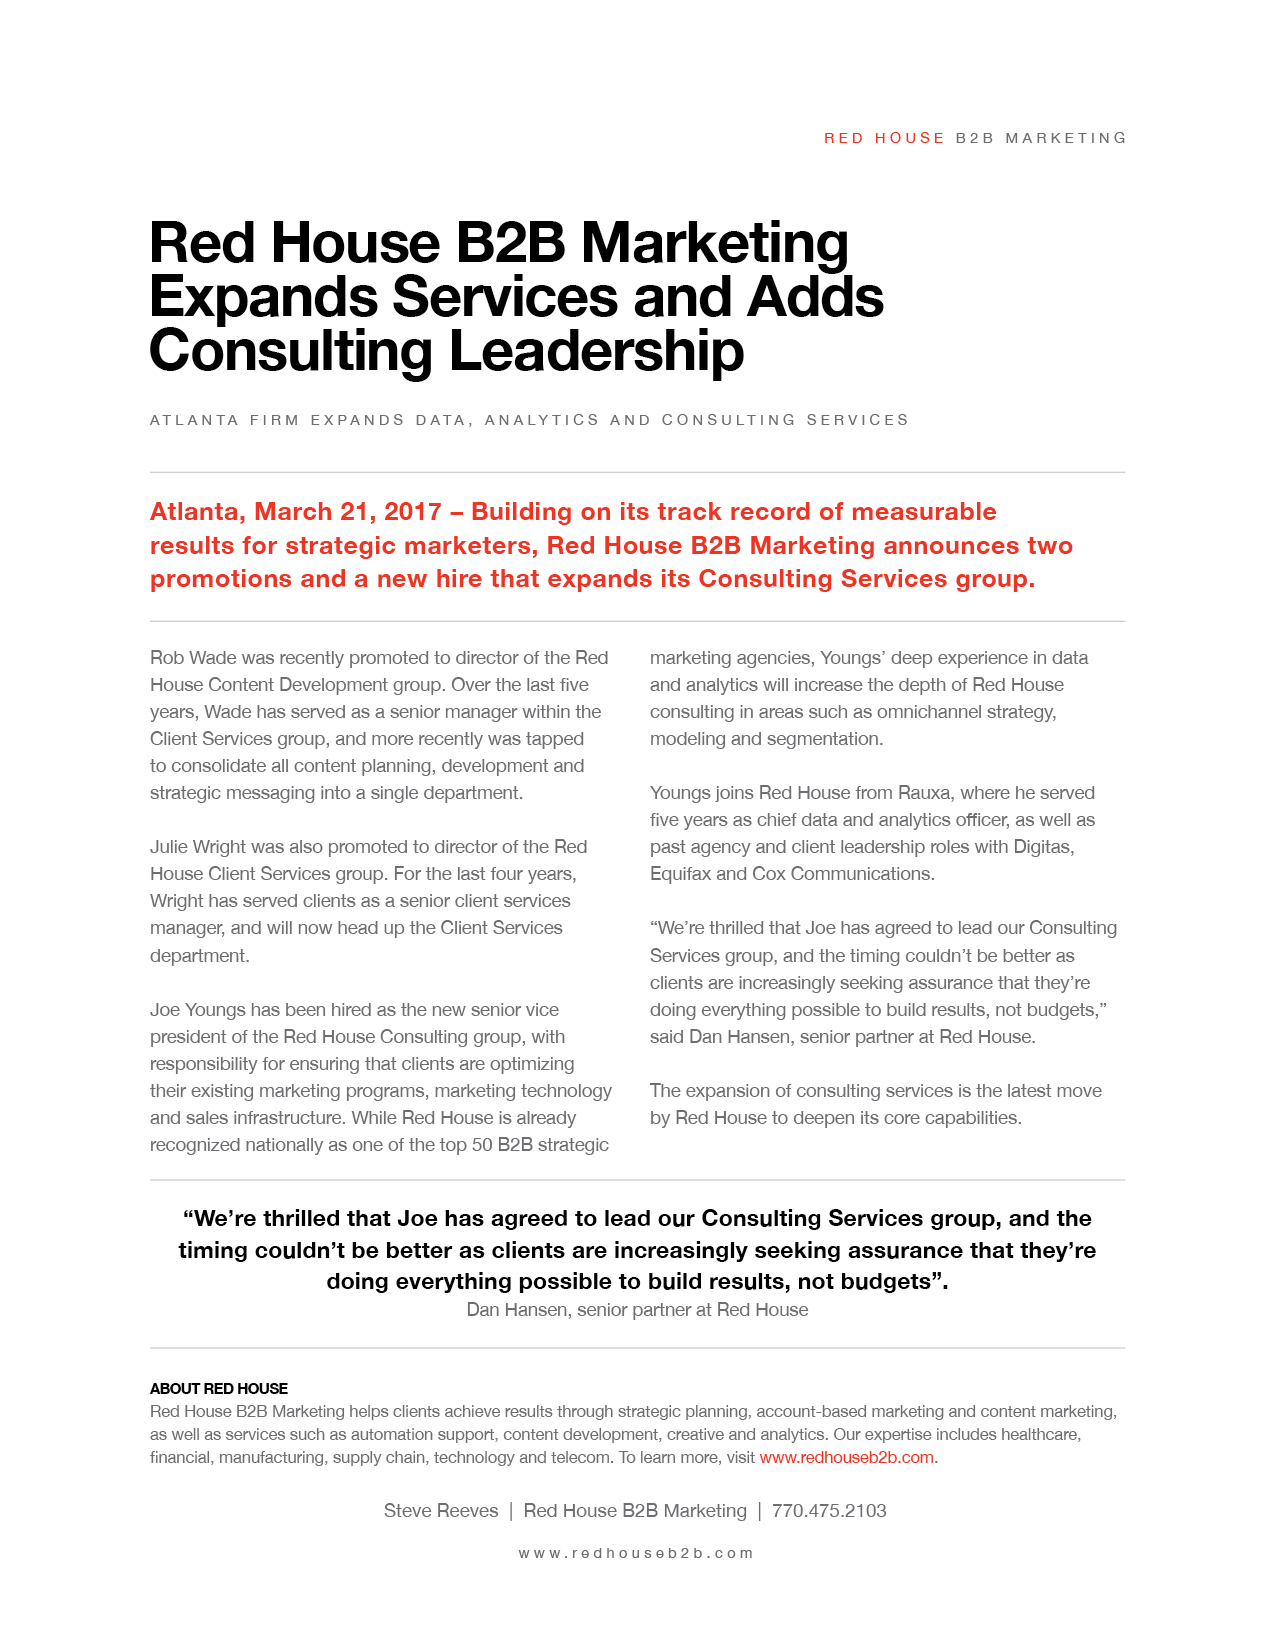 RHB2BMarketingExpandsServicesAddsConsultingLeadership_20170822